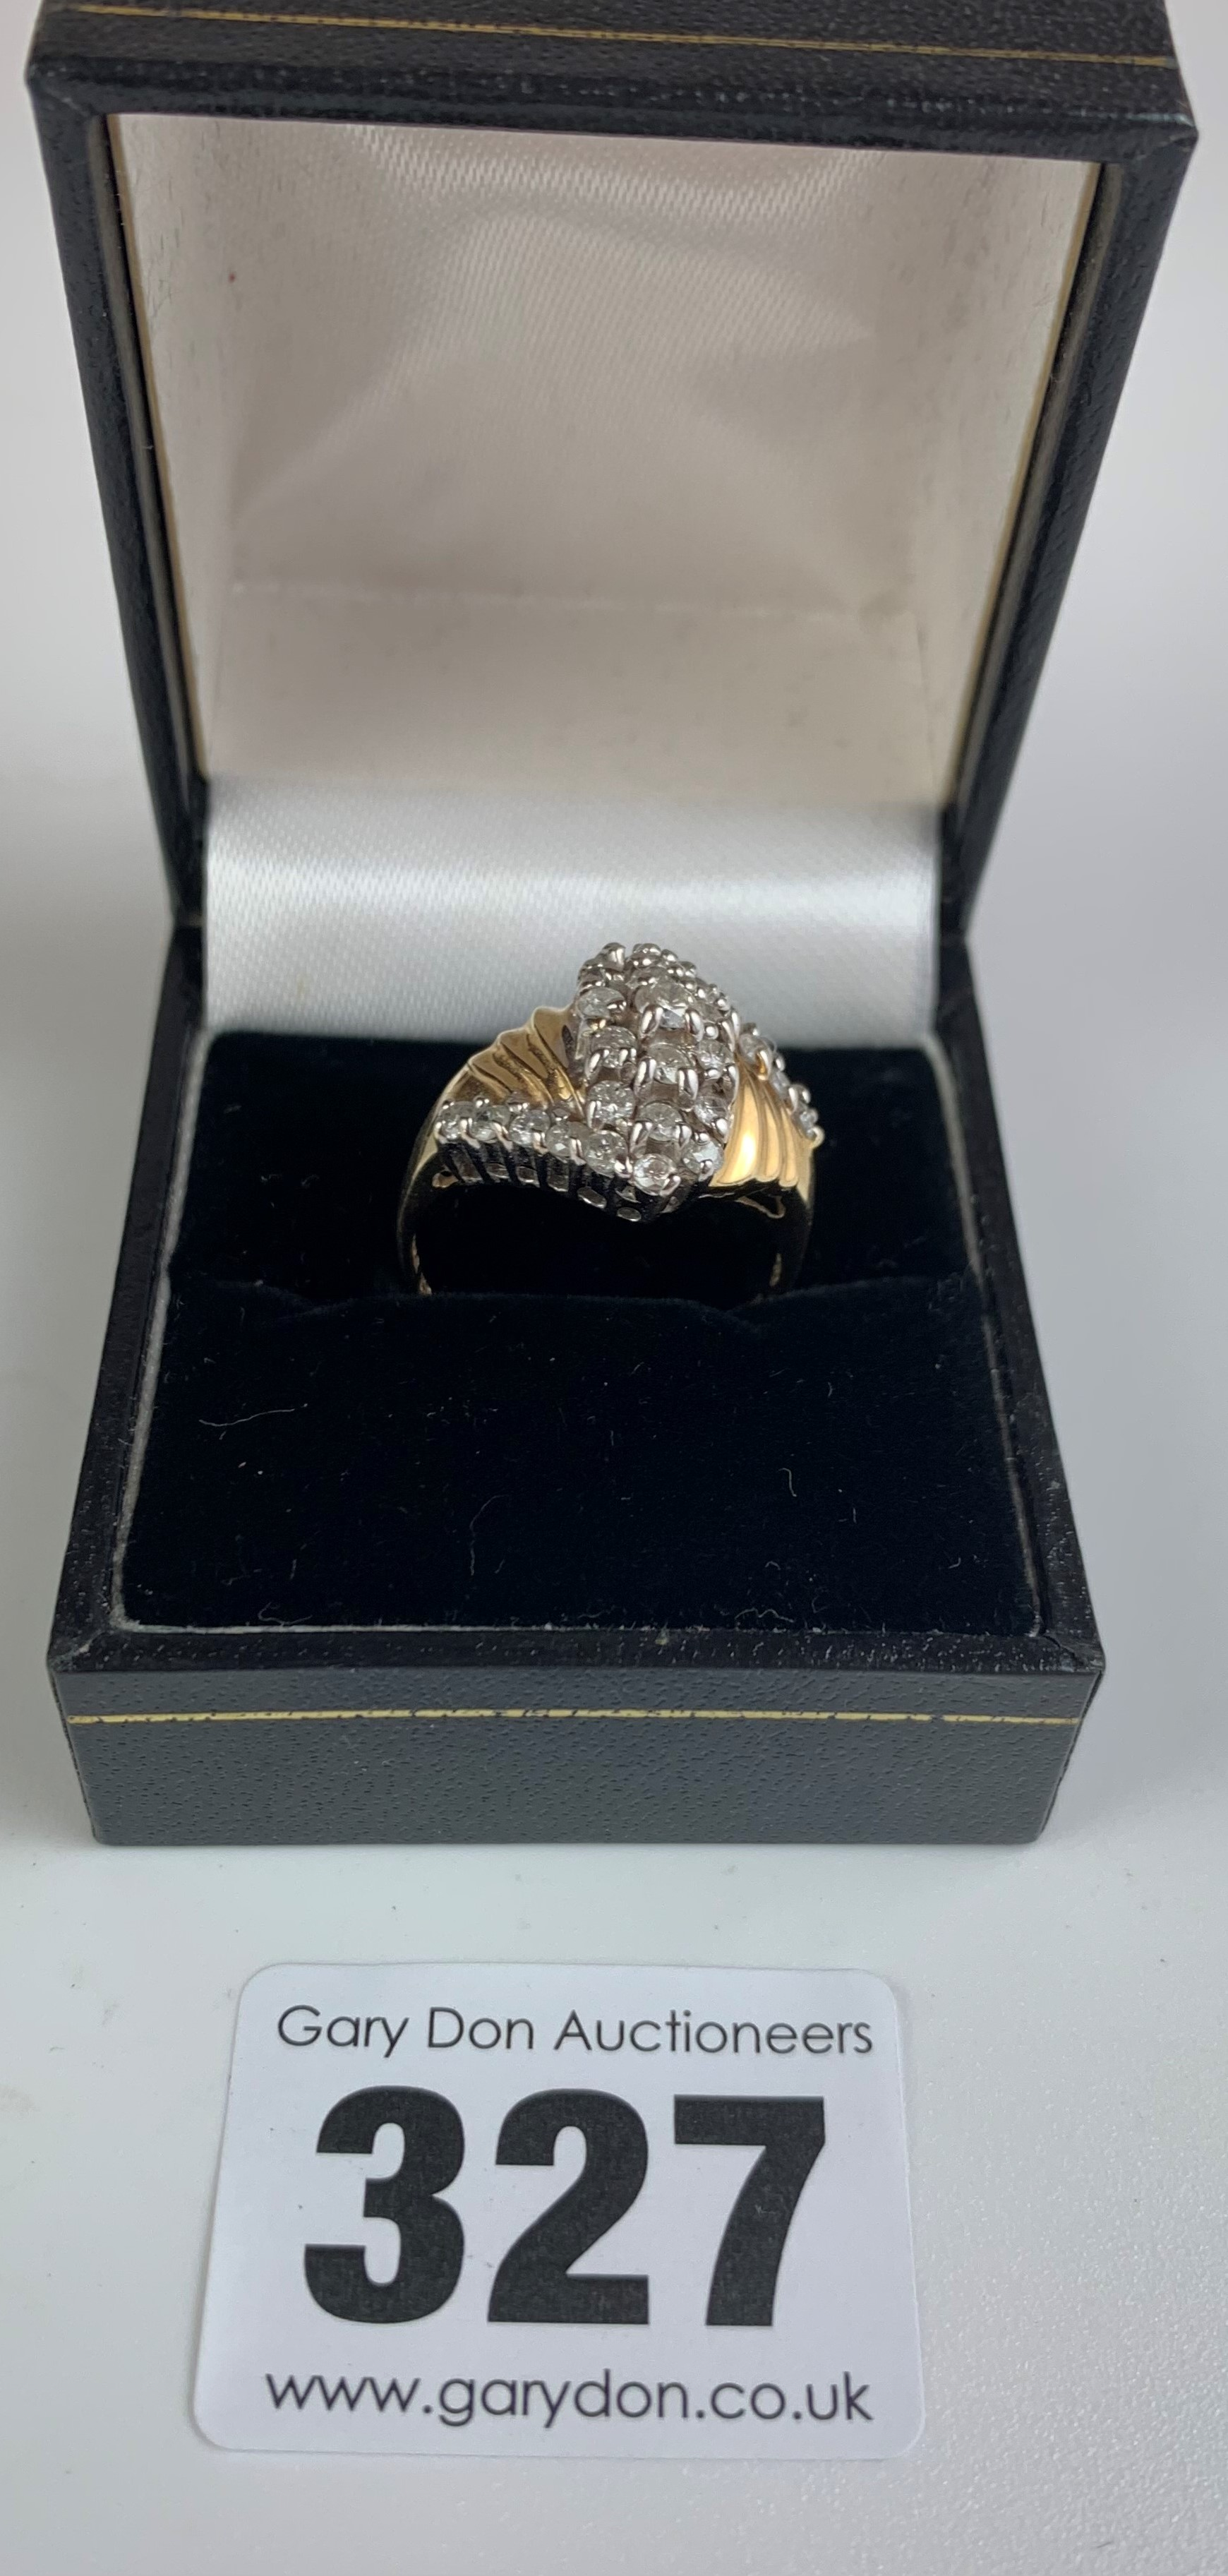 14k gold and white stone dress ring, size P/Q, w: 4.3 gms - Image 2 of 6